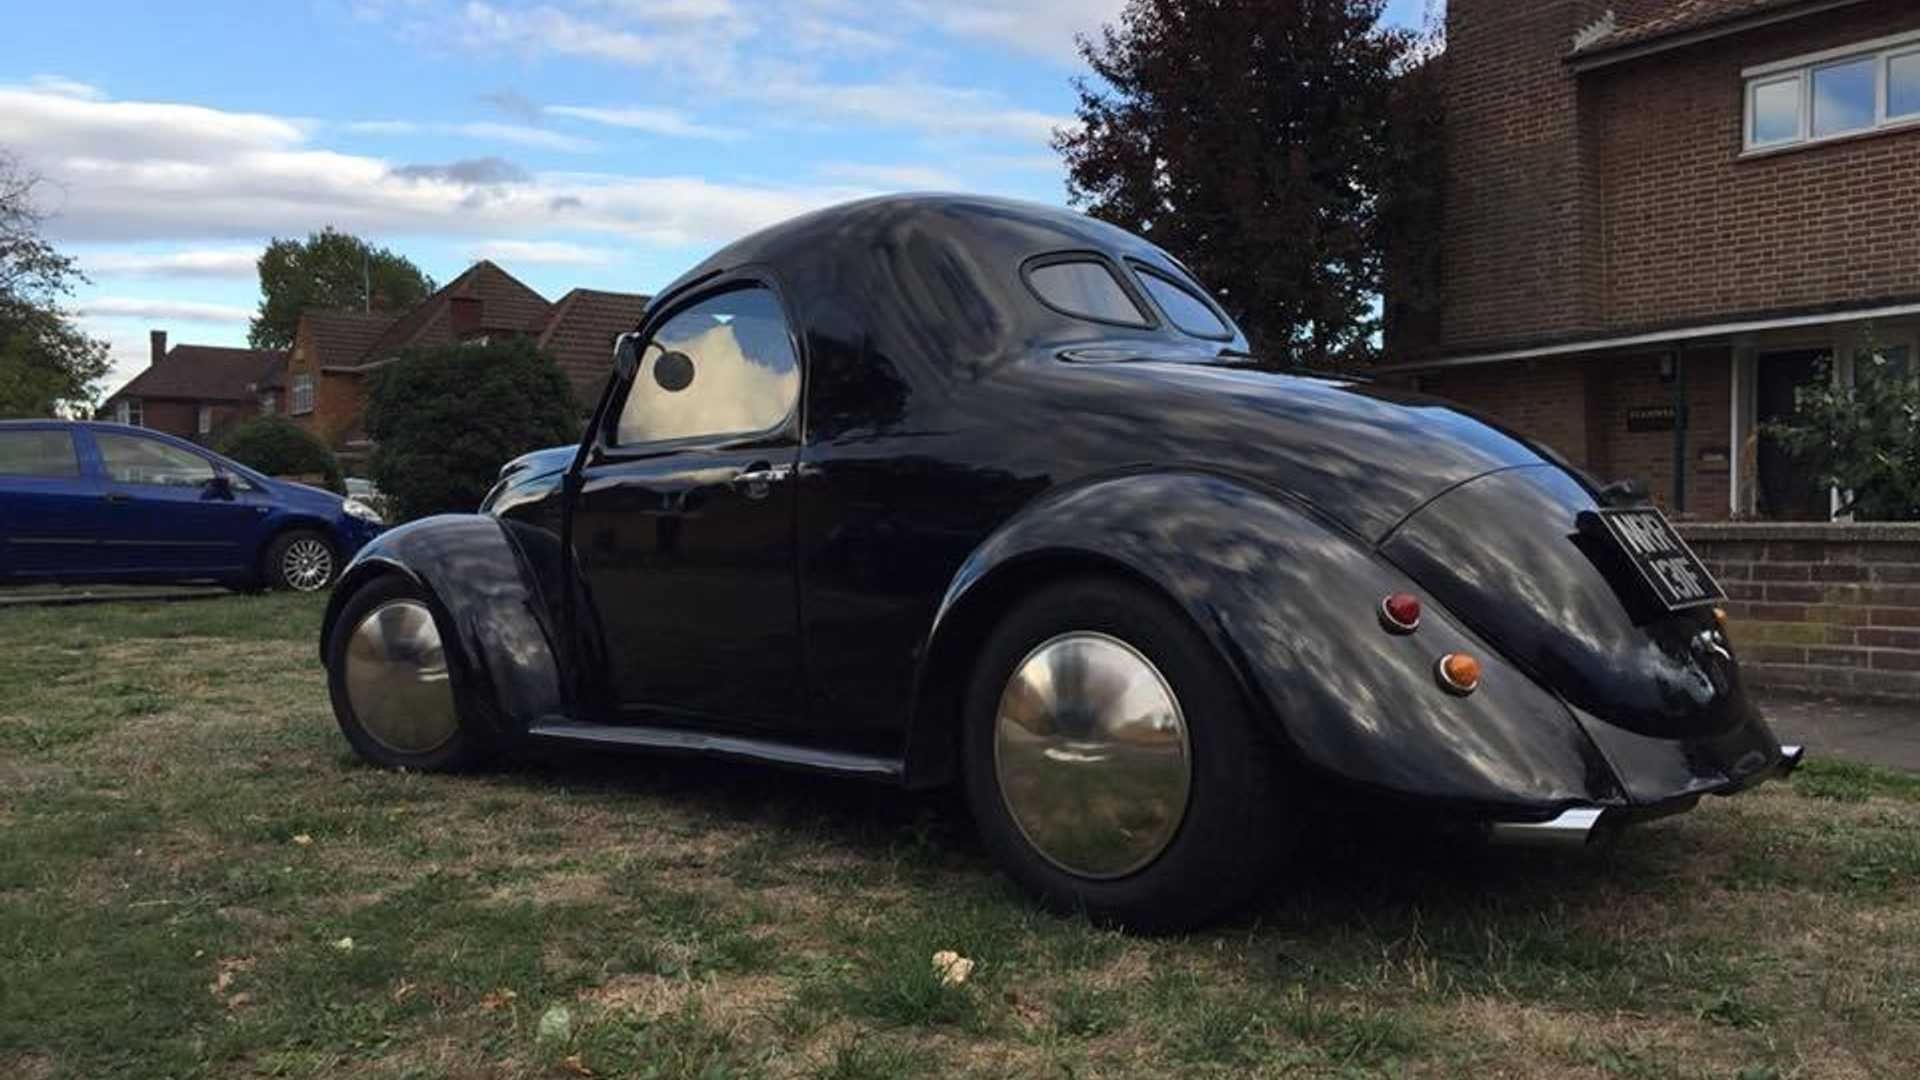 This 1967 Vw Beetle Has Been Transformed Into A Hot Rod Motorious